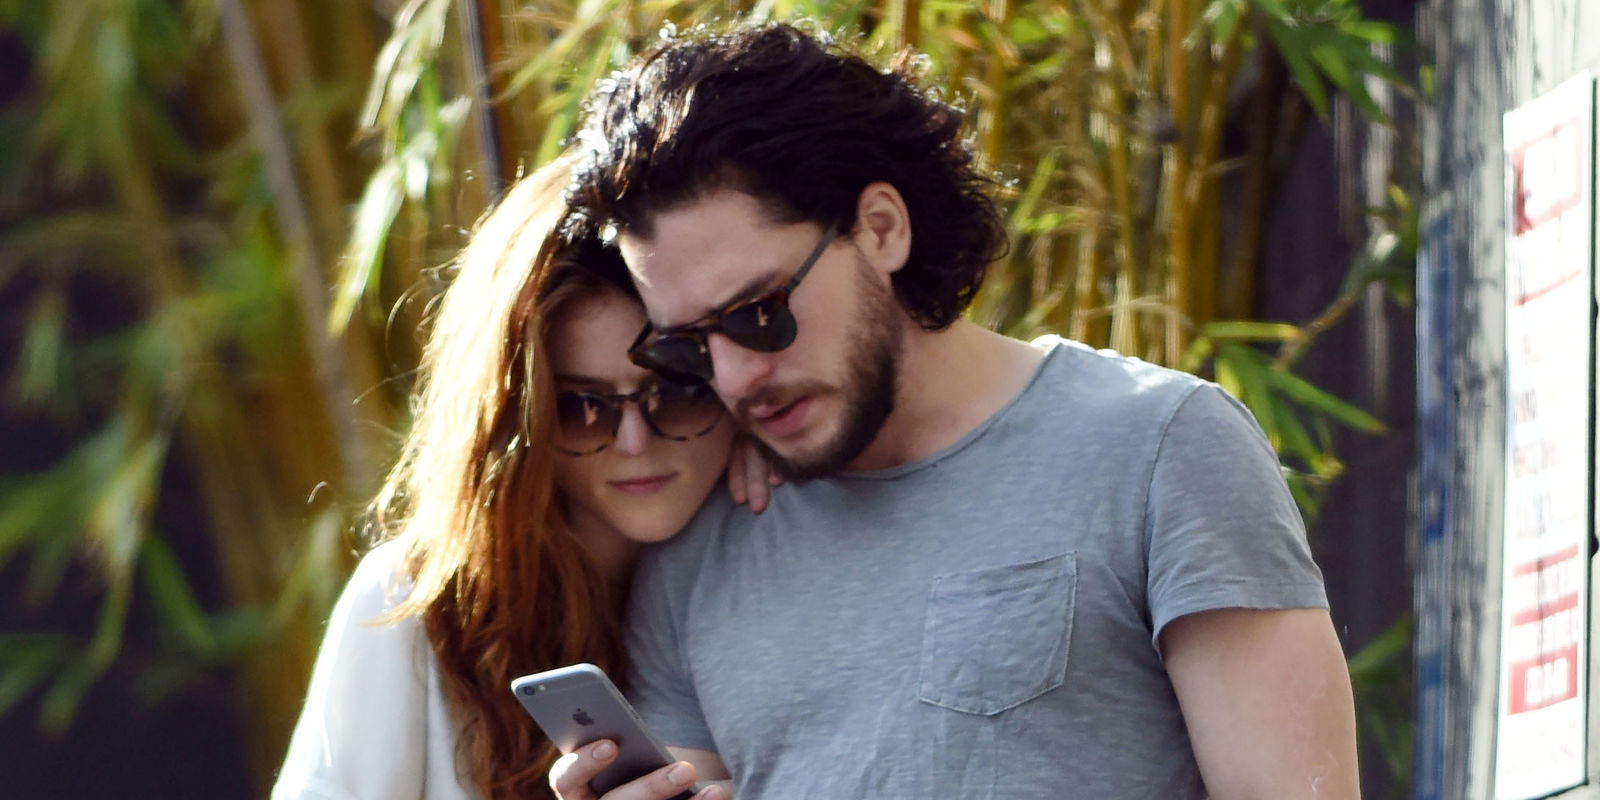 Game of Thrones, Kit Harington, Rose Leslie, Jon Snow, Yigritte, evlilik, aşk